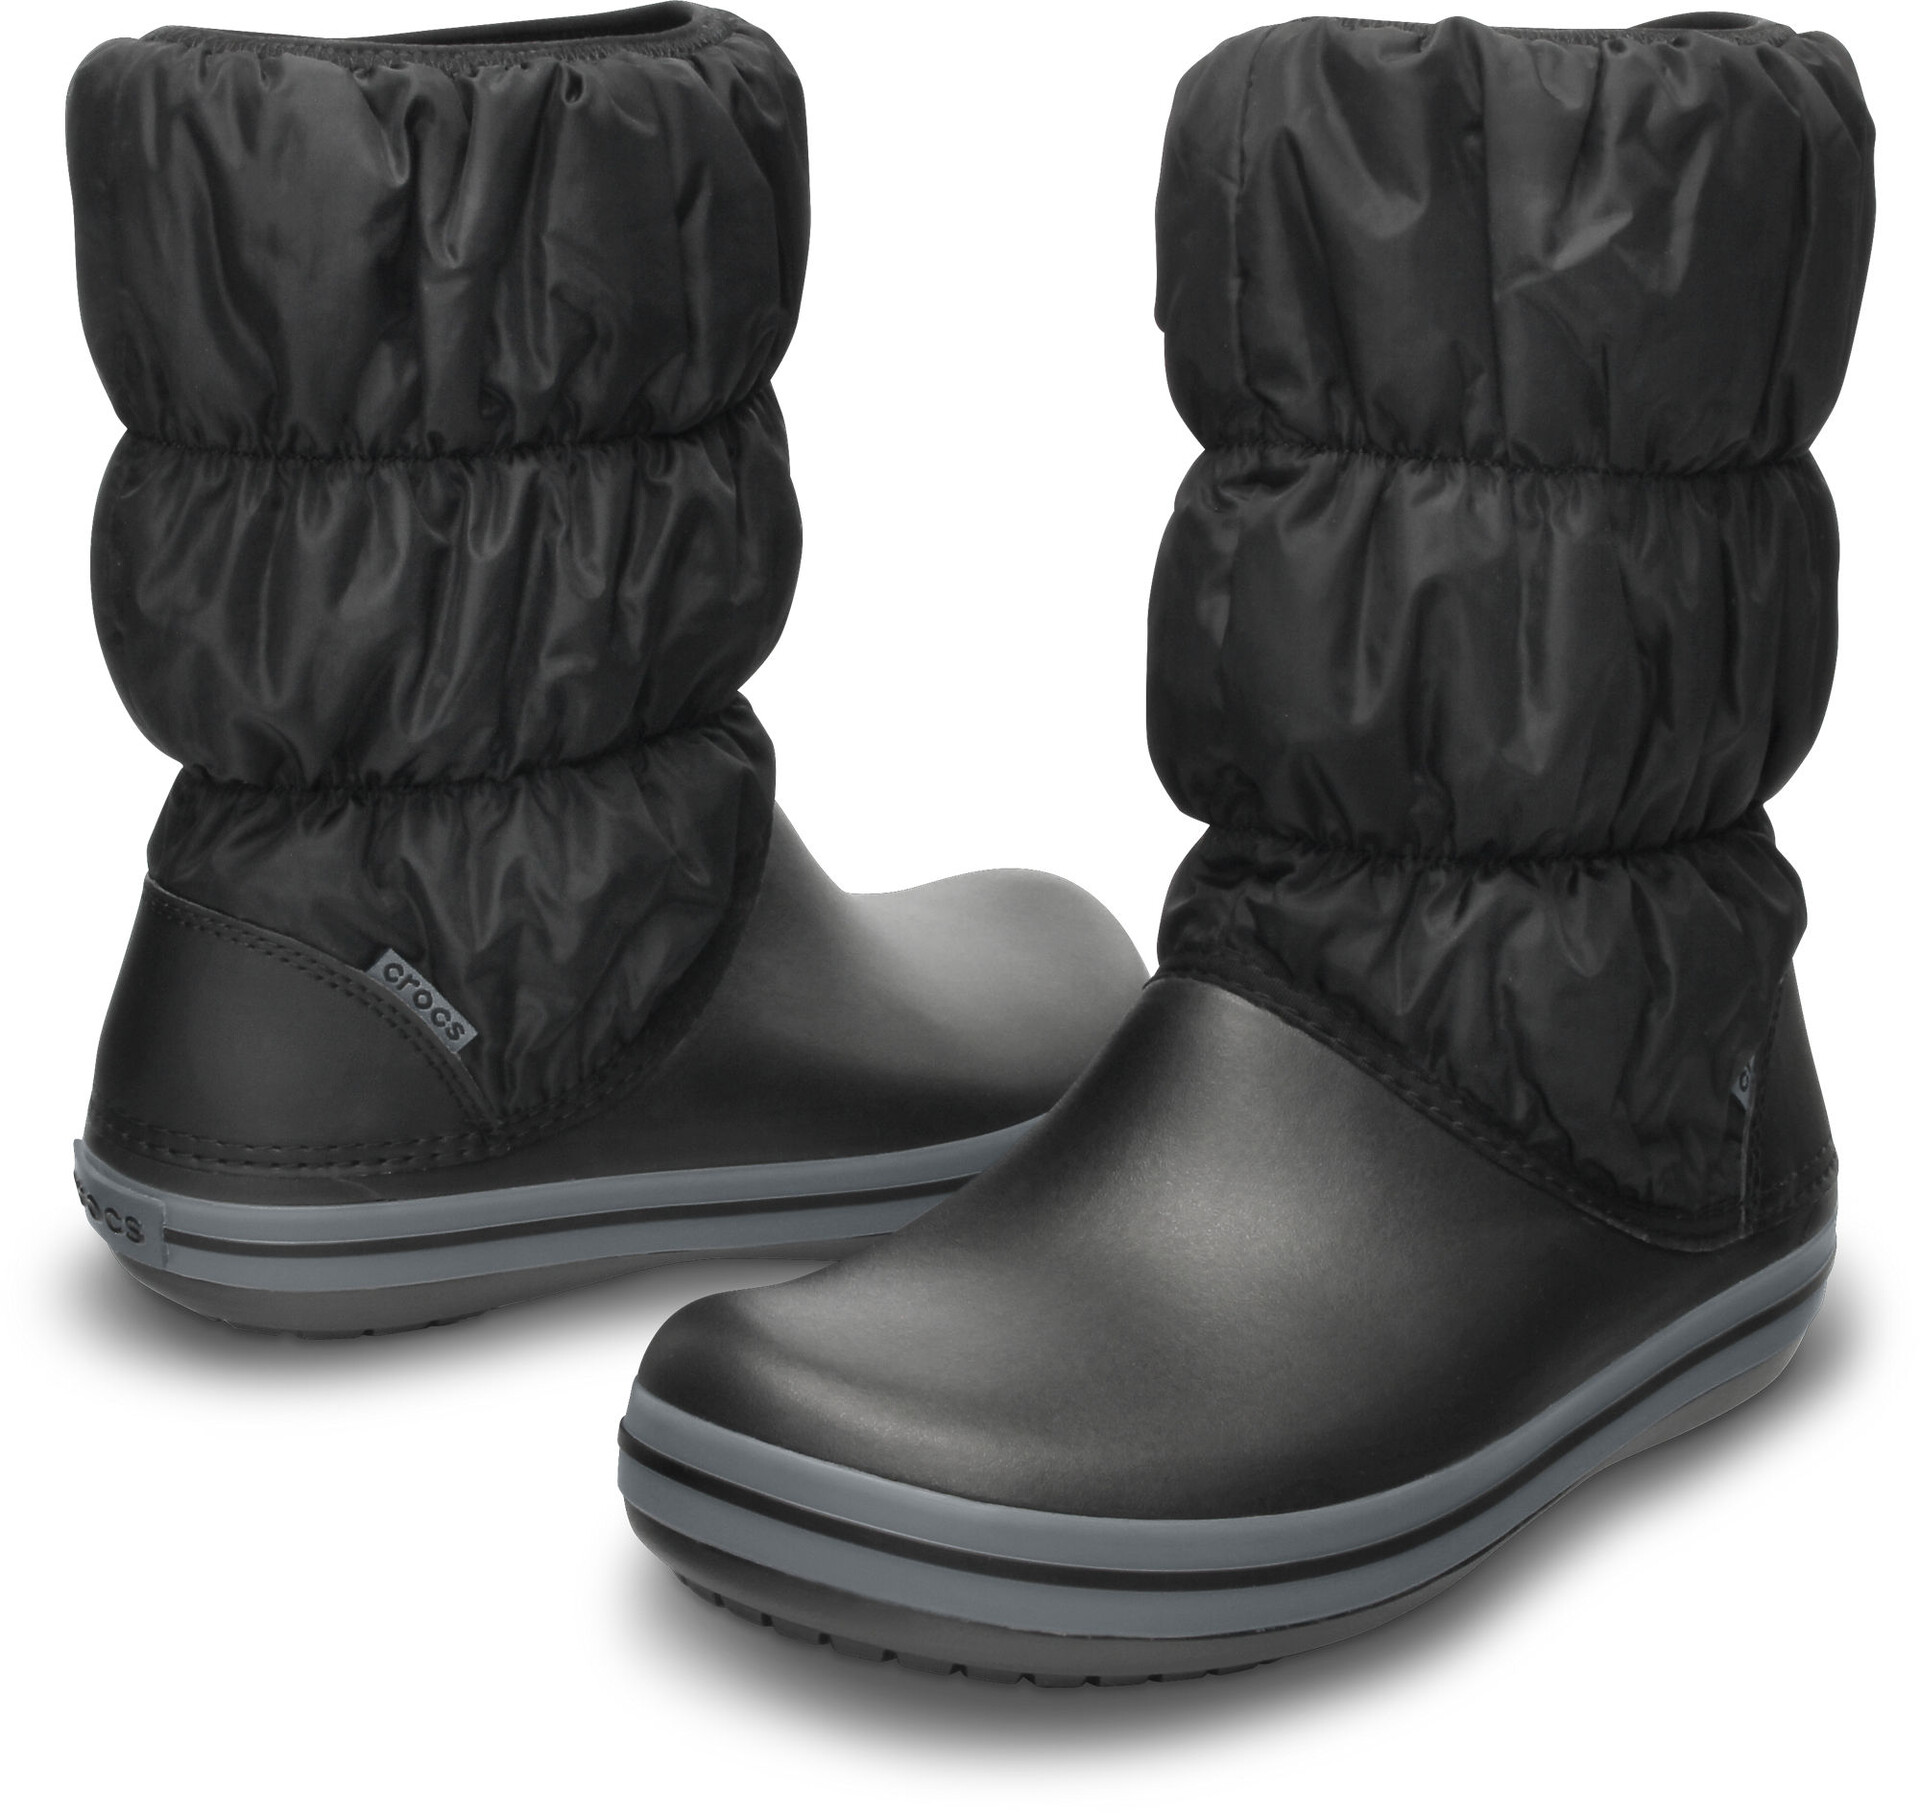 FemmeBlackcharcoal Crocs Puff FemmeBlackcharcoal Crocs Bottes Winter Winter Bottes Puff Crocs J3lcKF5uT1